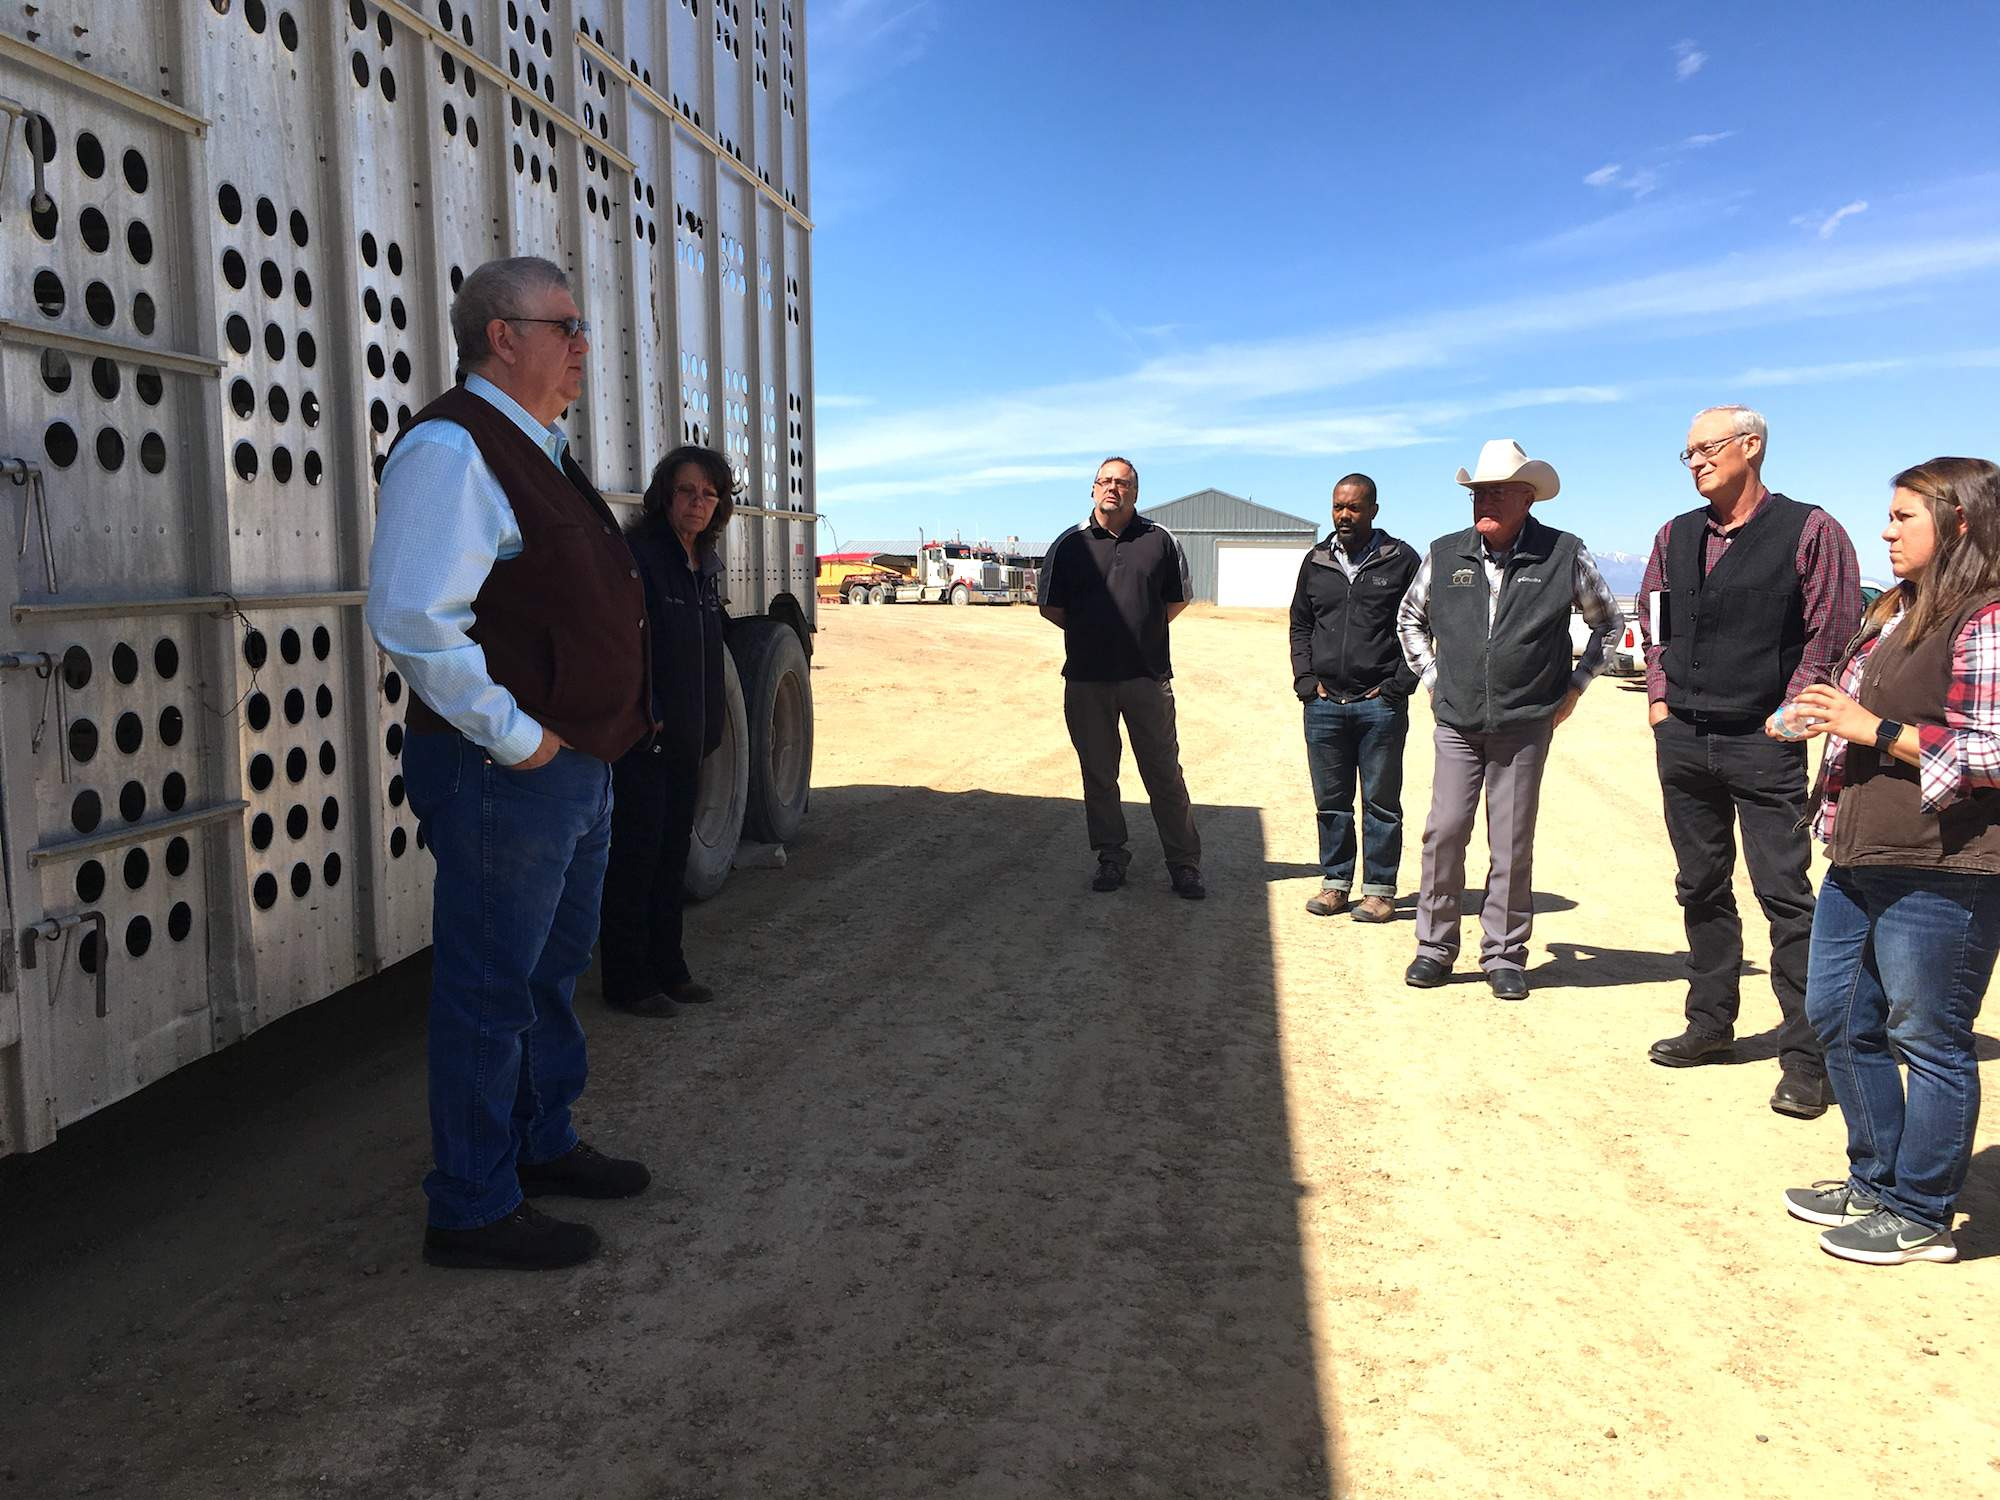 Extension educators and emergency managers discuss next to a livestock trailer